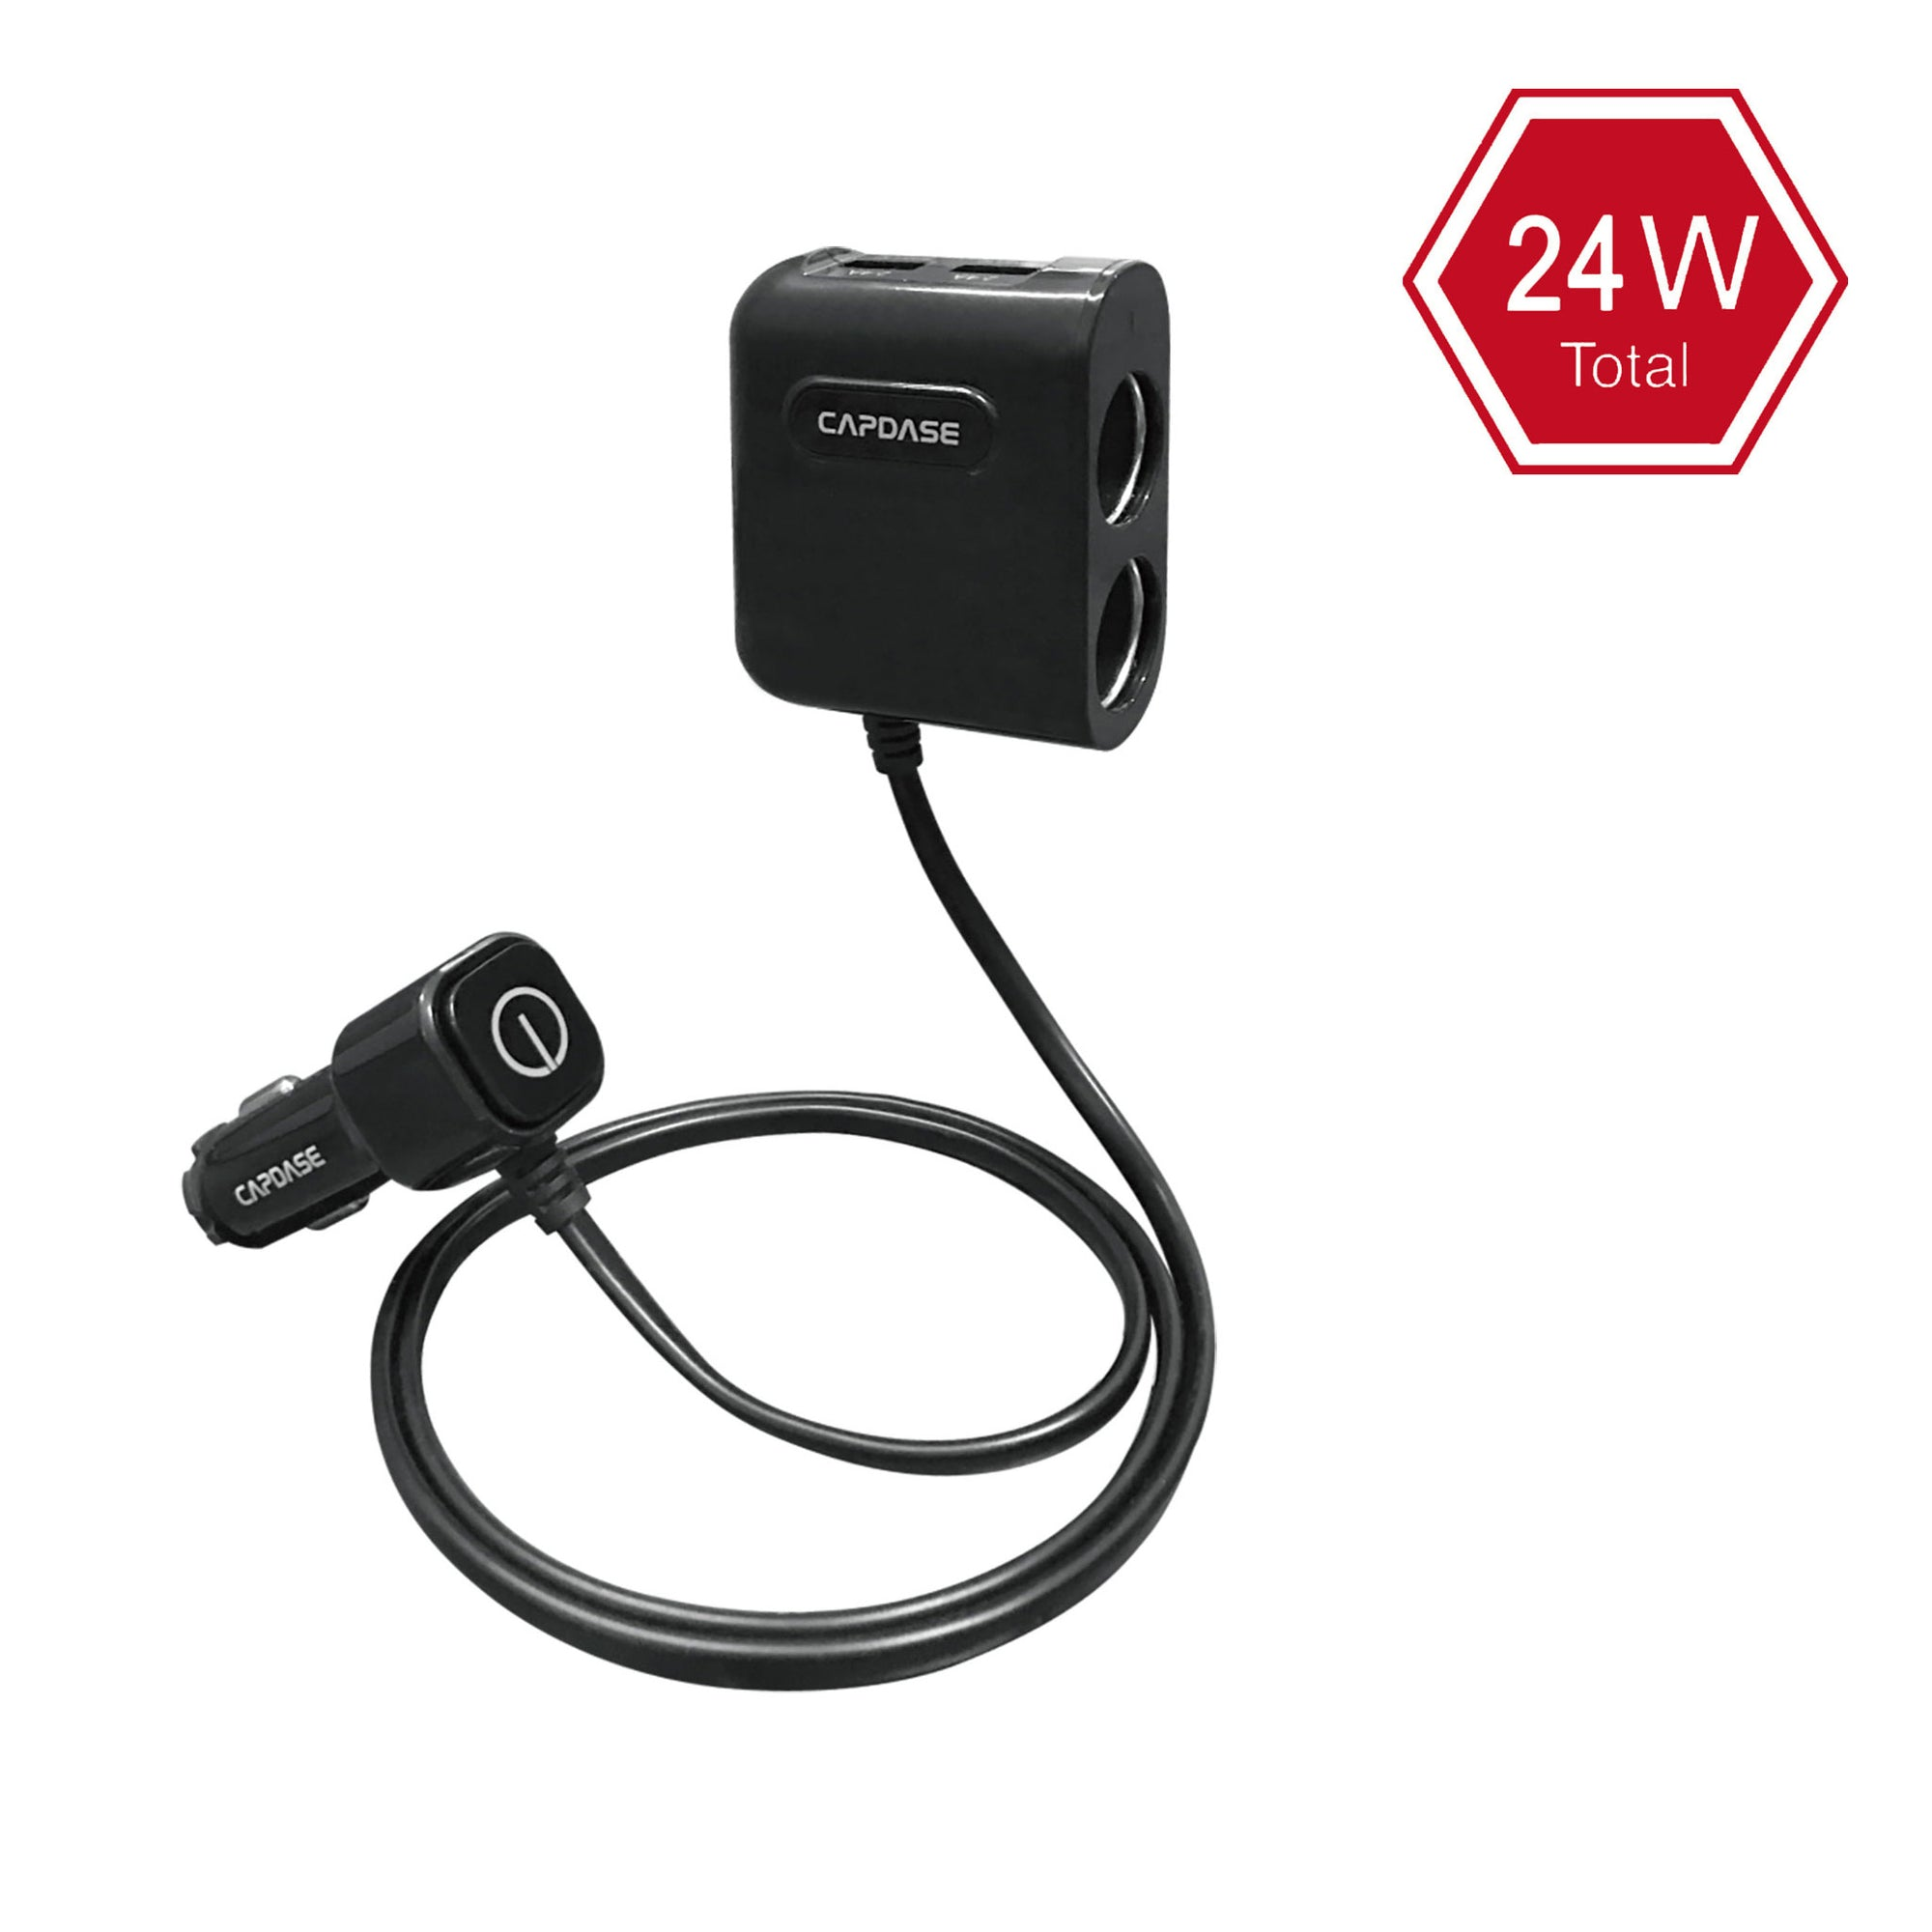 POWERHUB BM48 2-Socket and 2-USB Car Charger